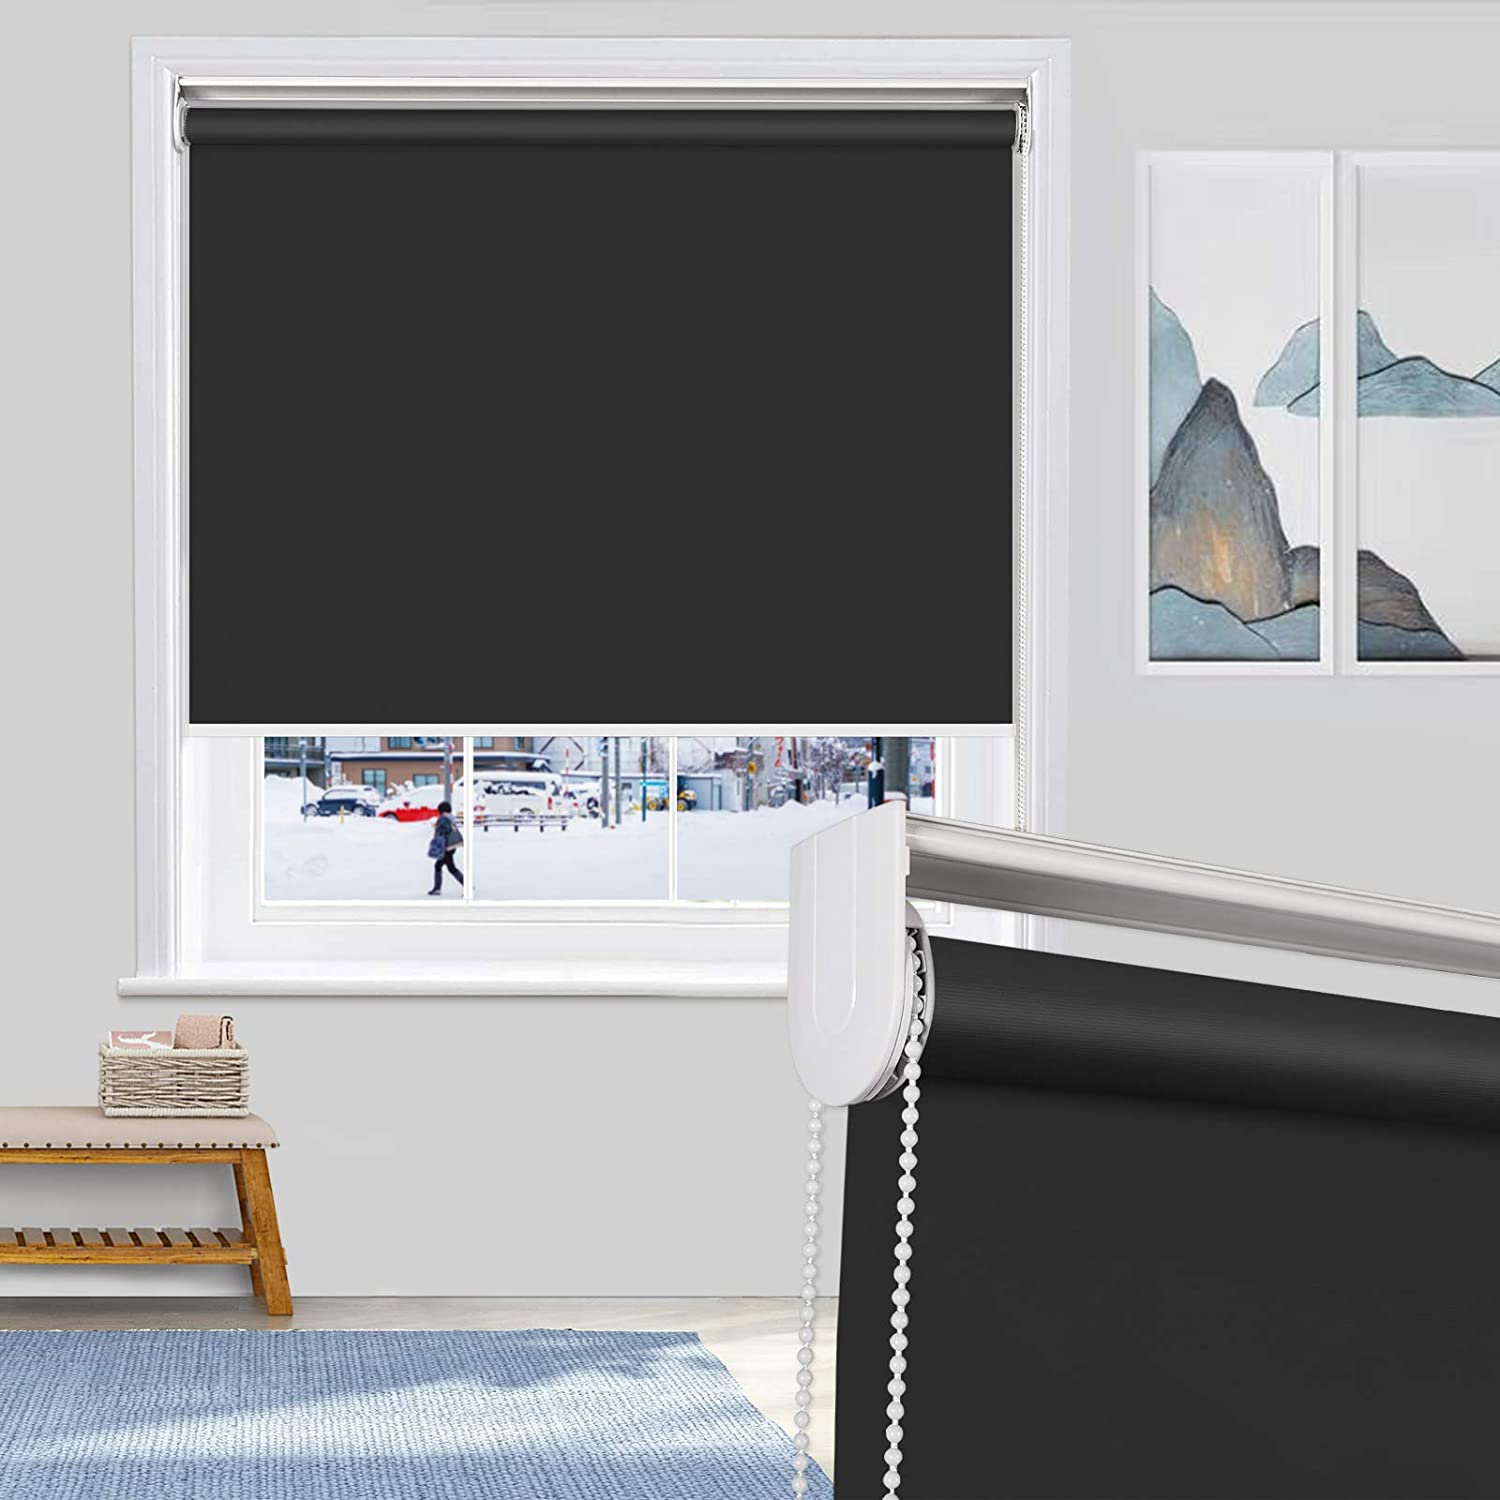 MiLin 100% Blackout Roller Shades アウトレットセール 特集 Fast Roll Delivery Window お買い得 UPS